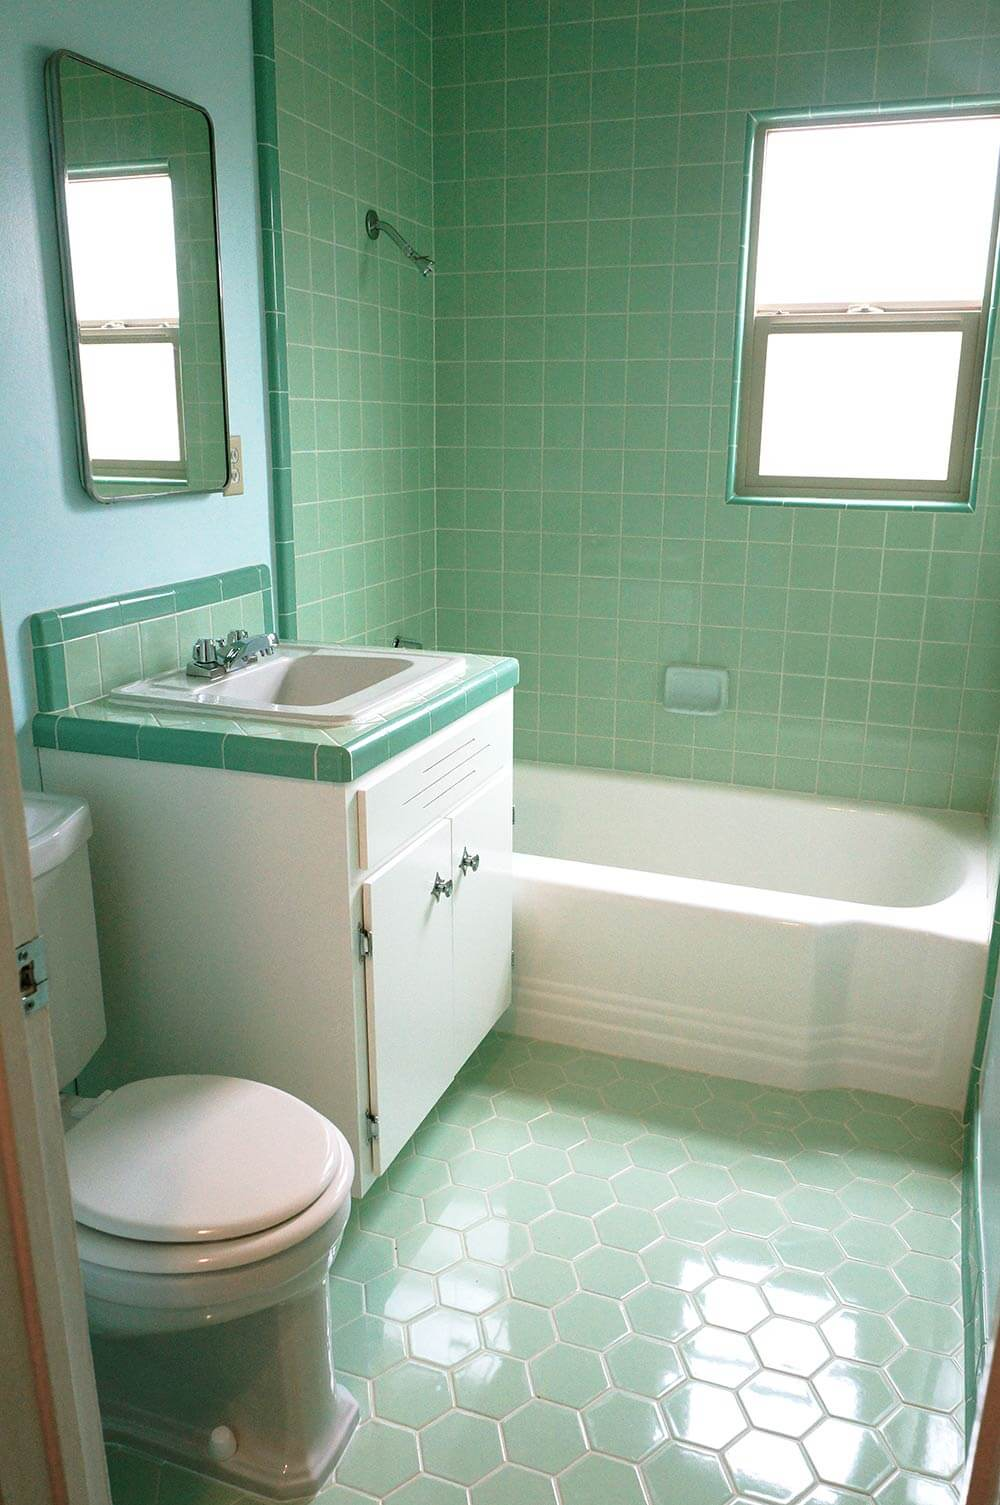 The Color Green In Kitchen And Bathroom Sinks Tubs And Toilets From 1928 To 1962 Retro